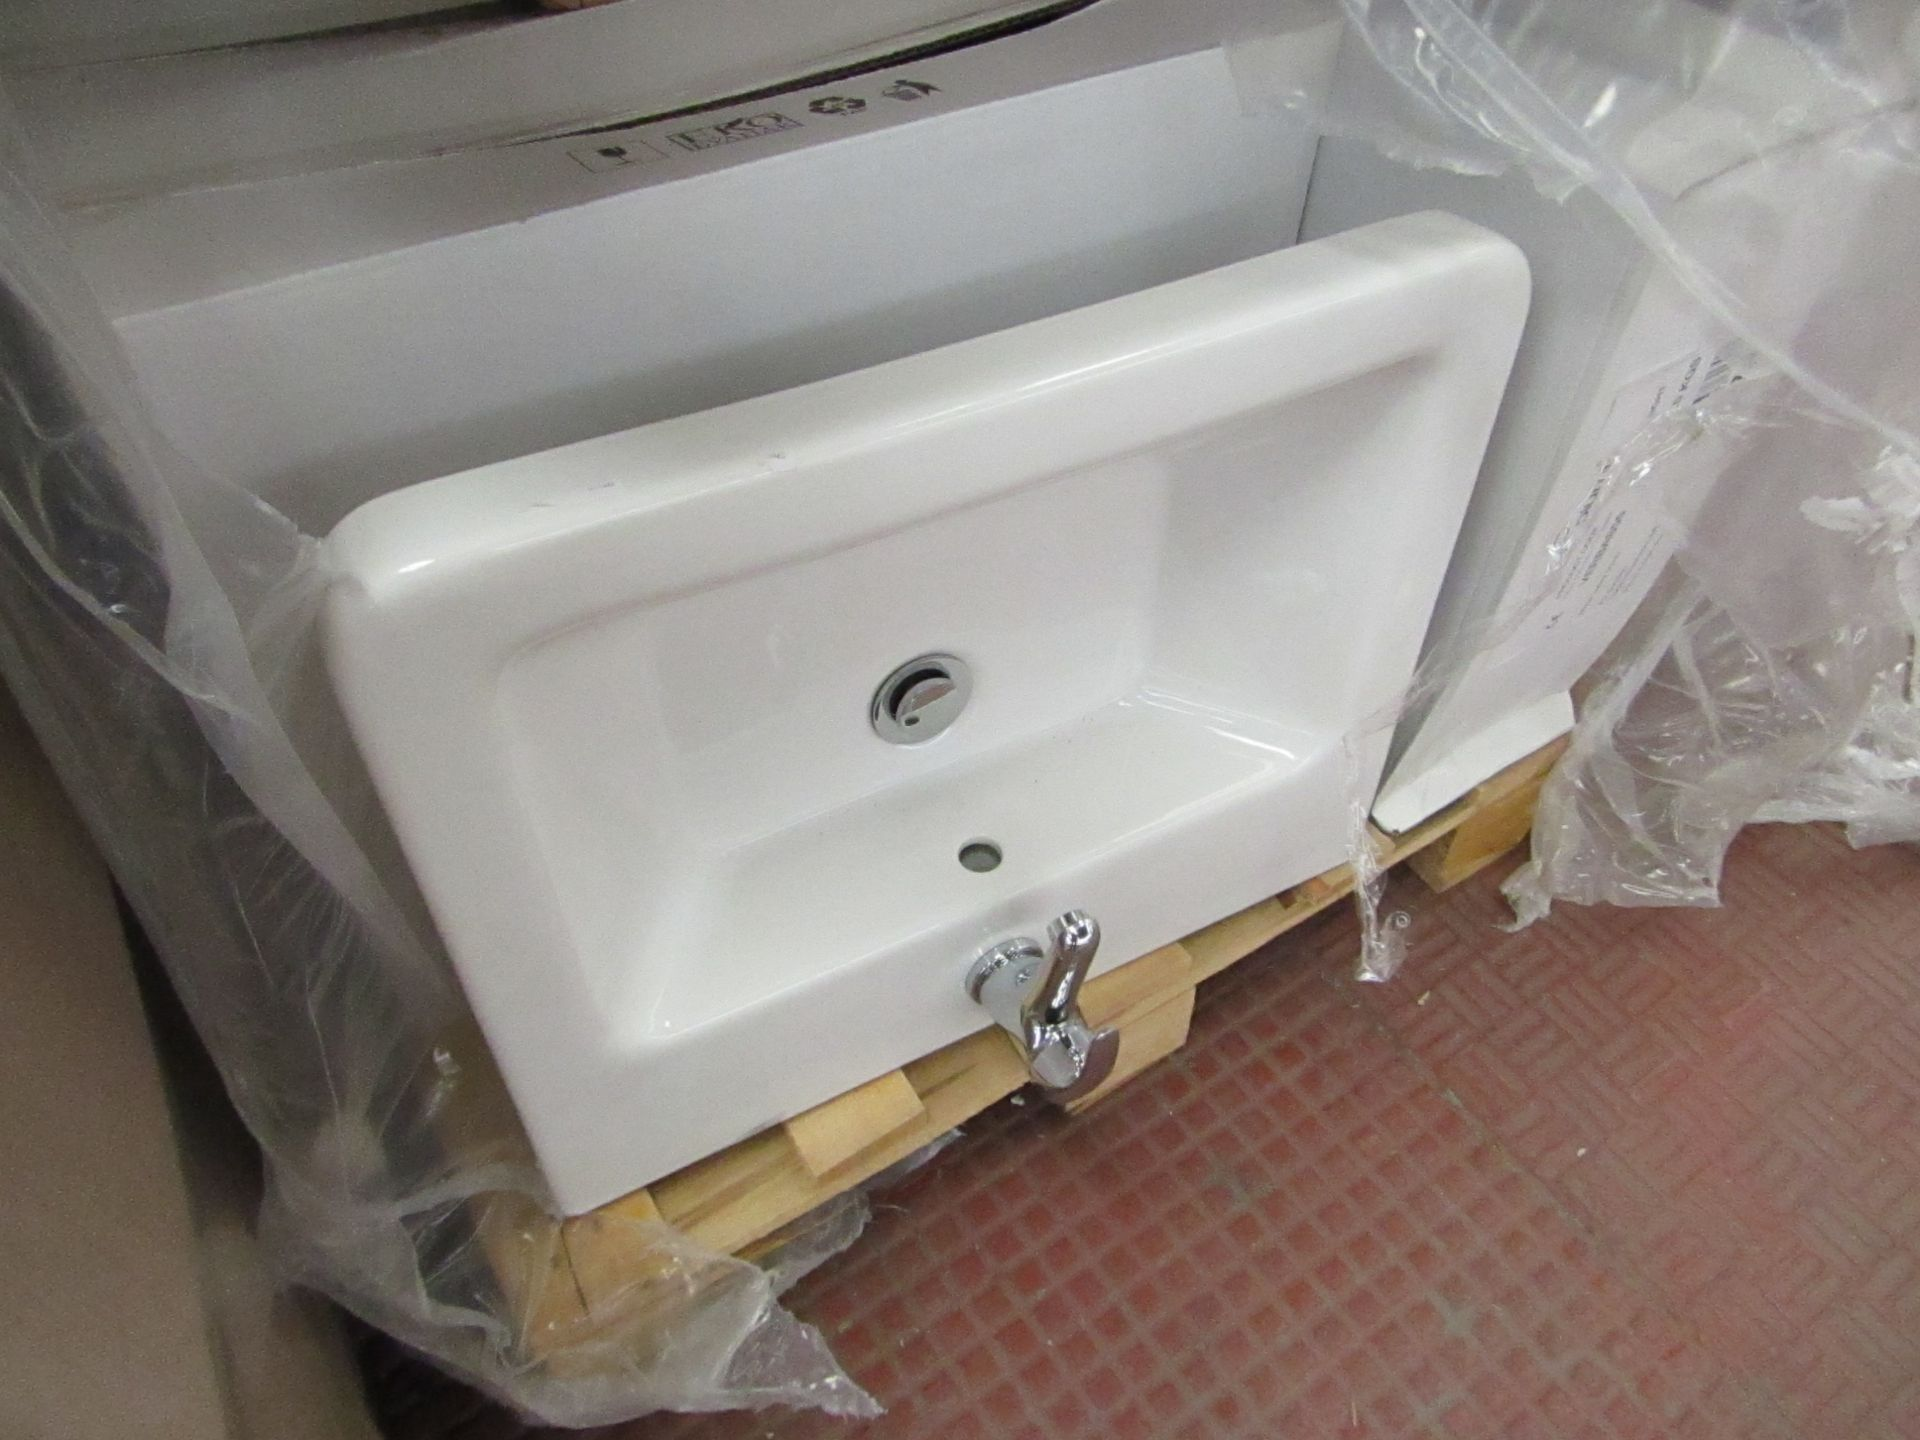 Lotto 12 - Victoria Plum Verso 550mm sink with mono block mixer tap, new and Boxed